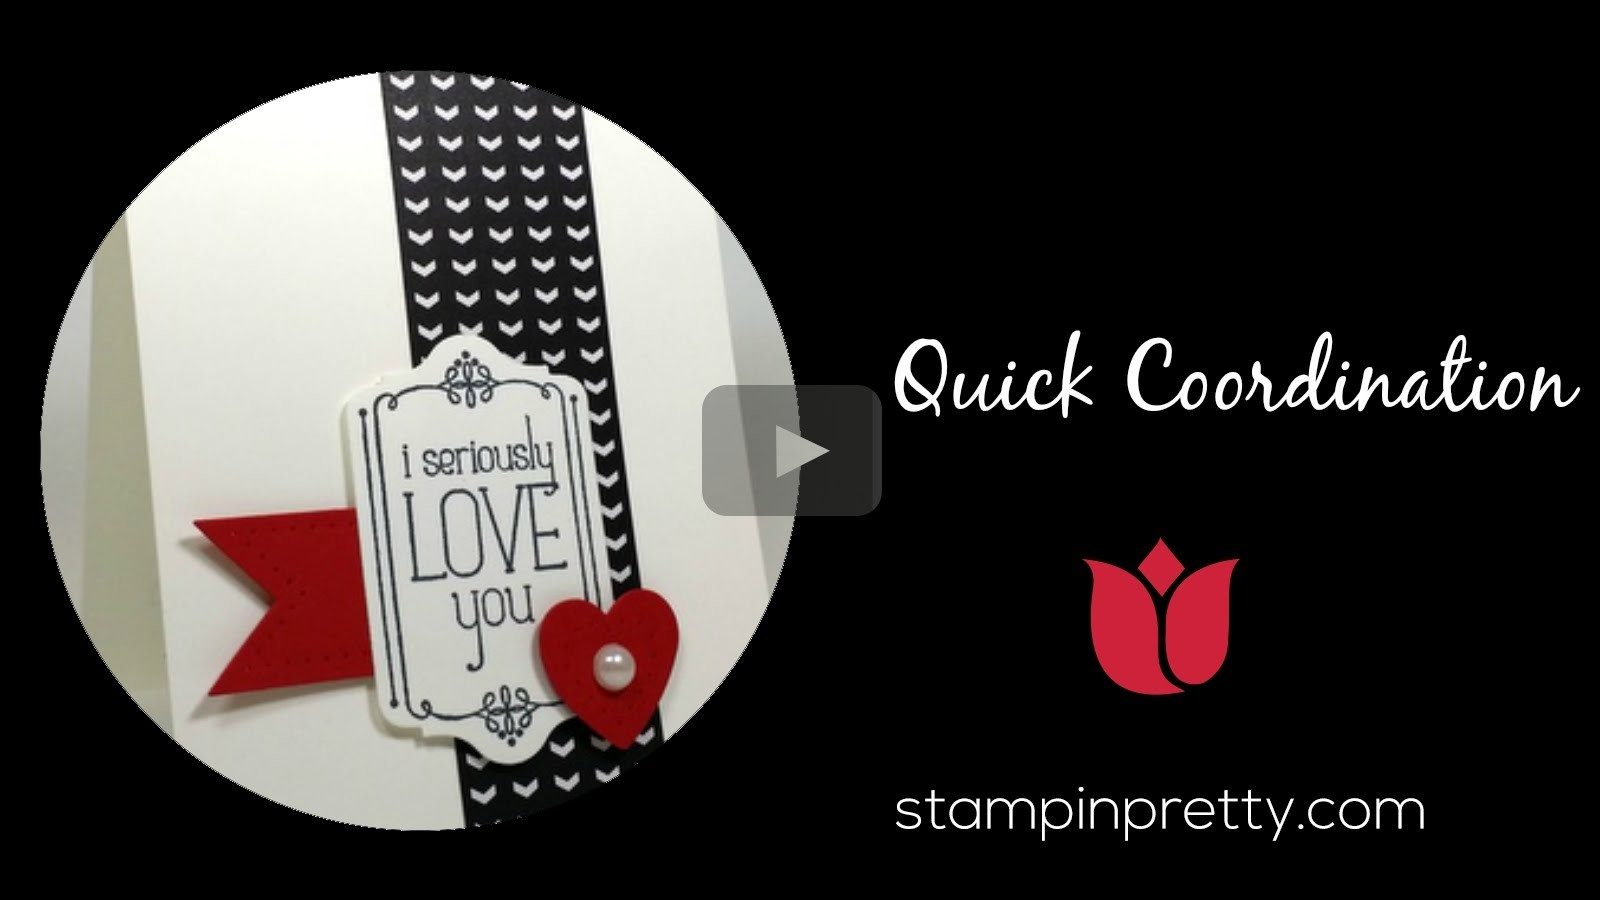 Stampin' Up! Tutorial:  How to Coordinate Quickly